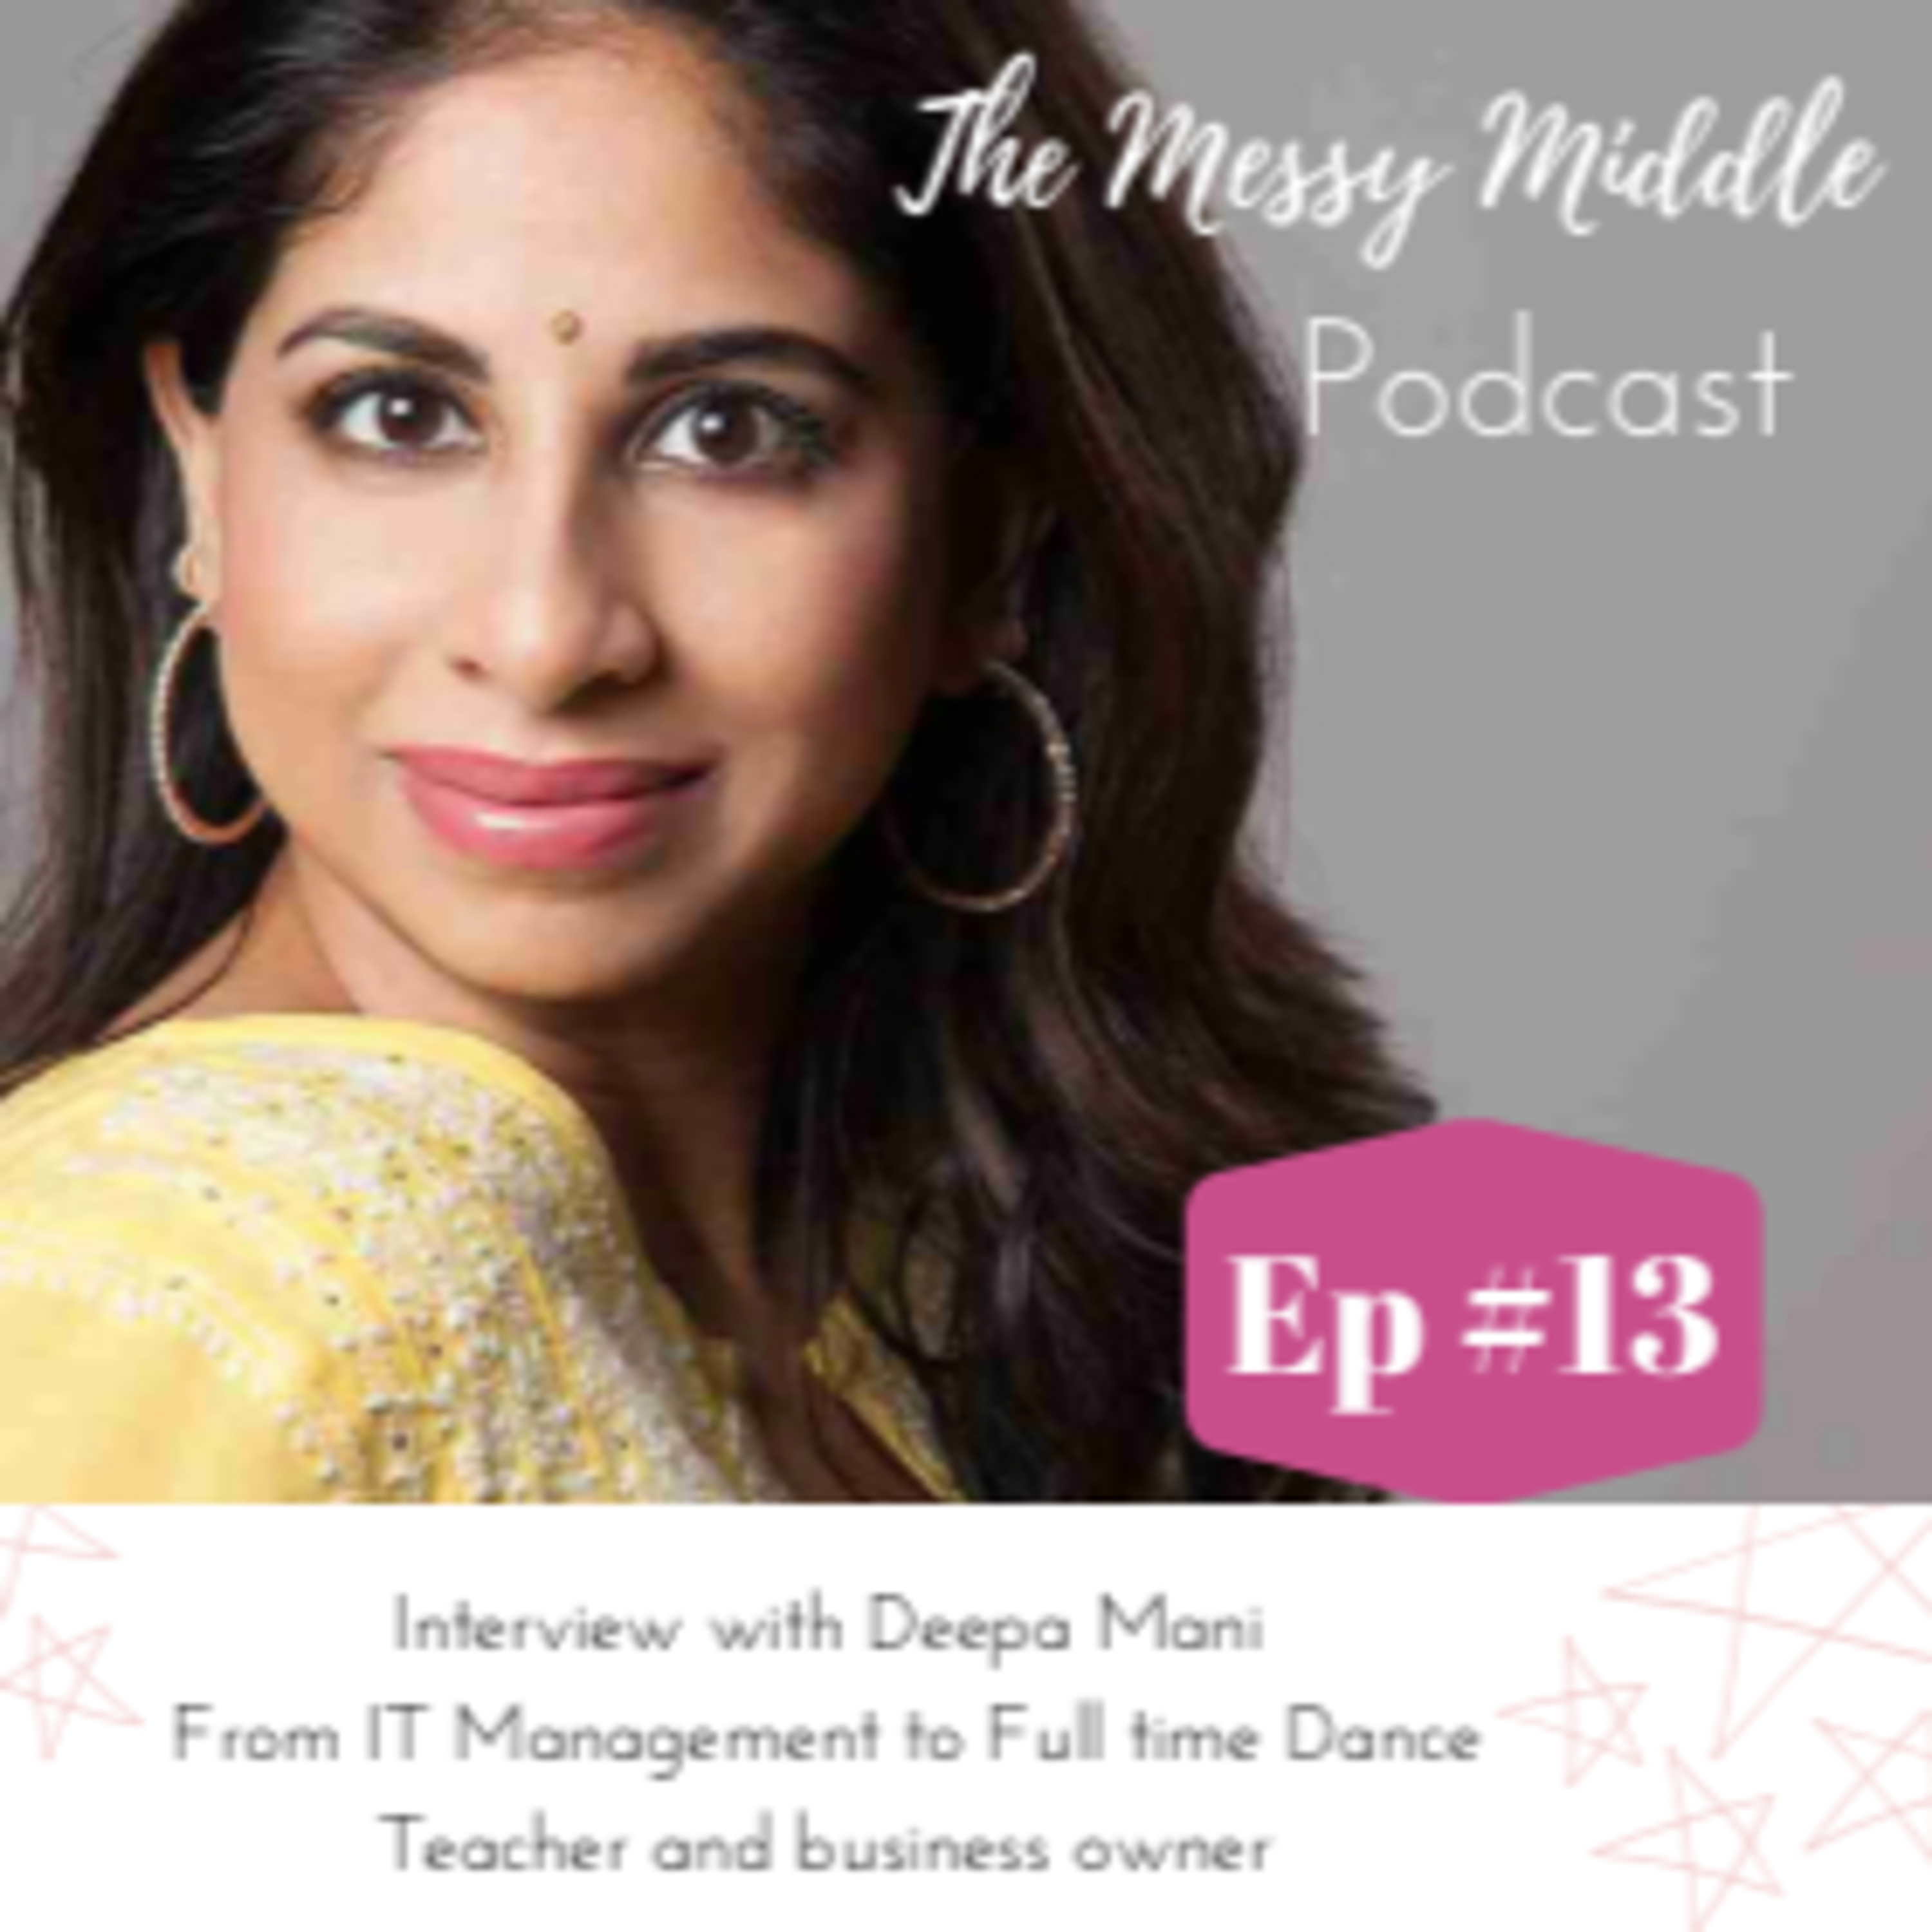 #13 Interview with Deepa Mani - From IT Management to Full time Dance Teacher and Business Owner